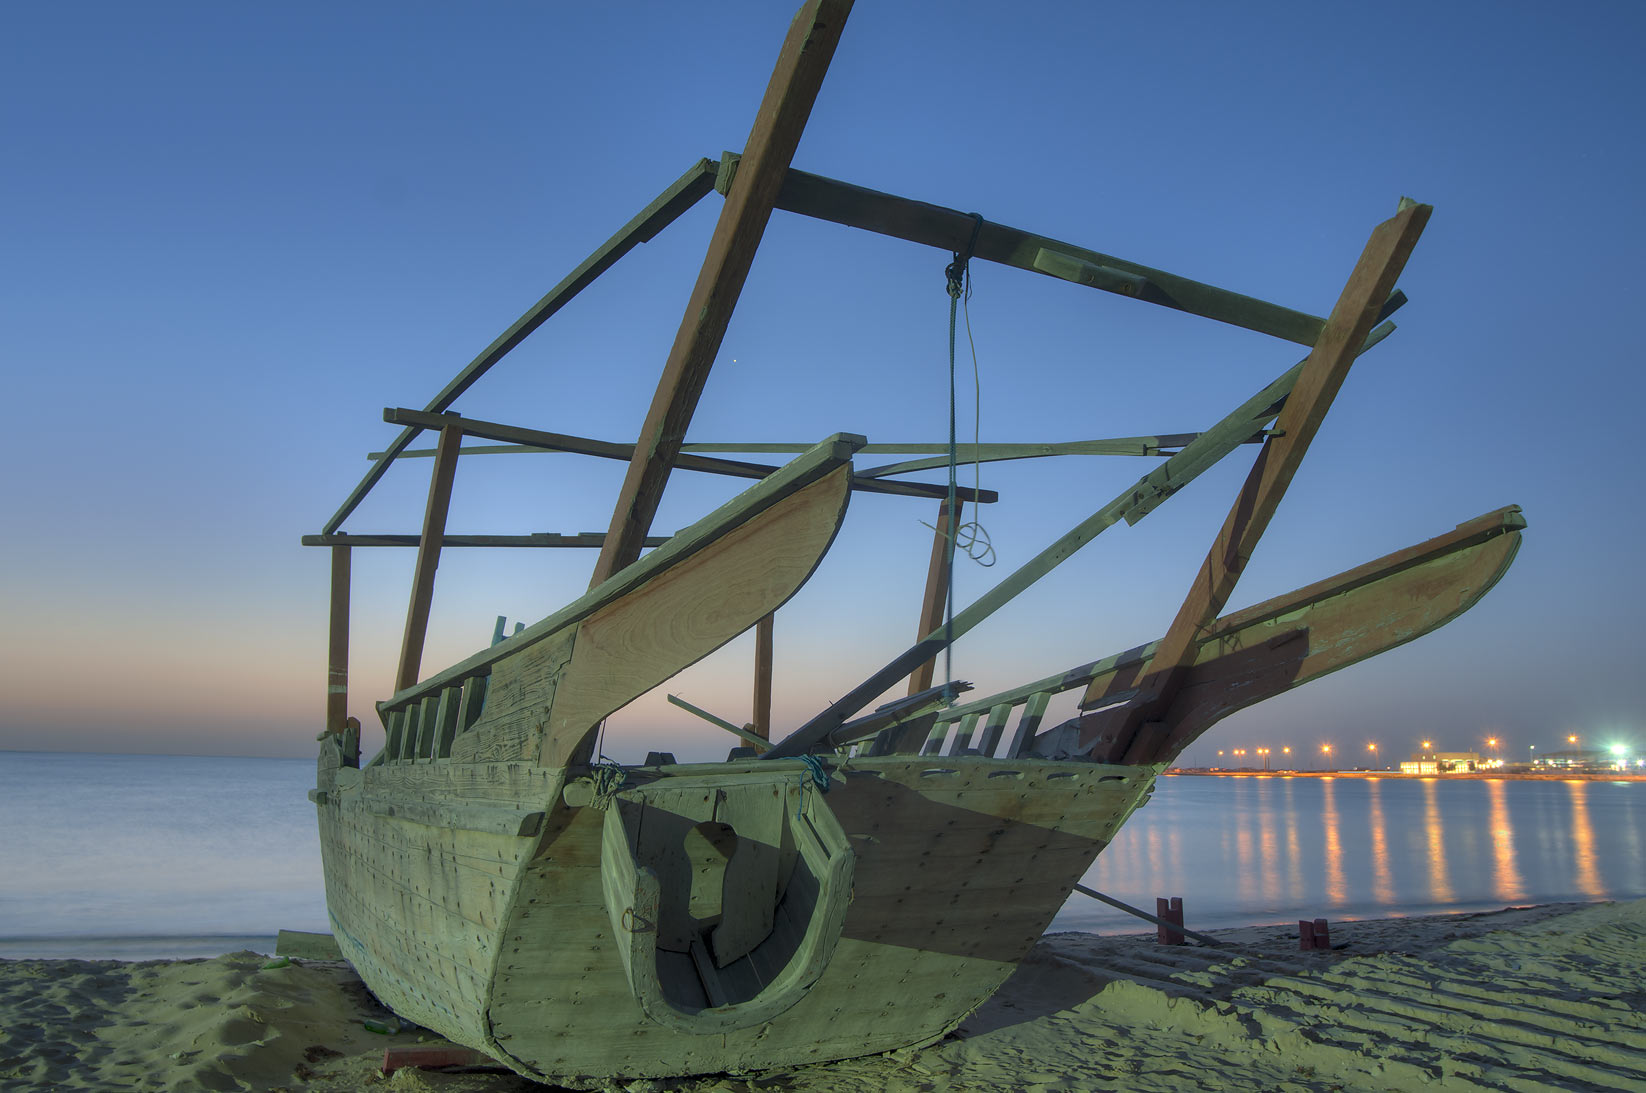 Beached dhow boat near heritage village at morning. Al Wakrah, Qatar